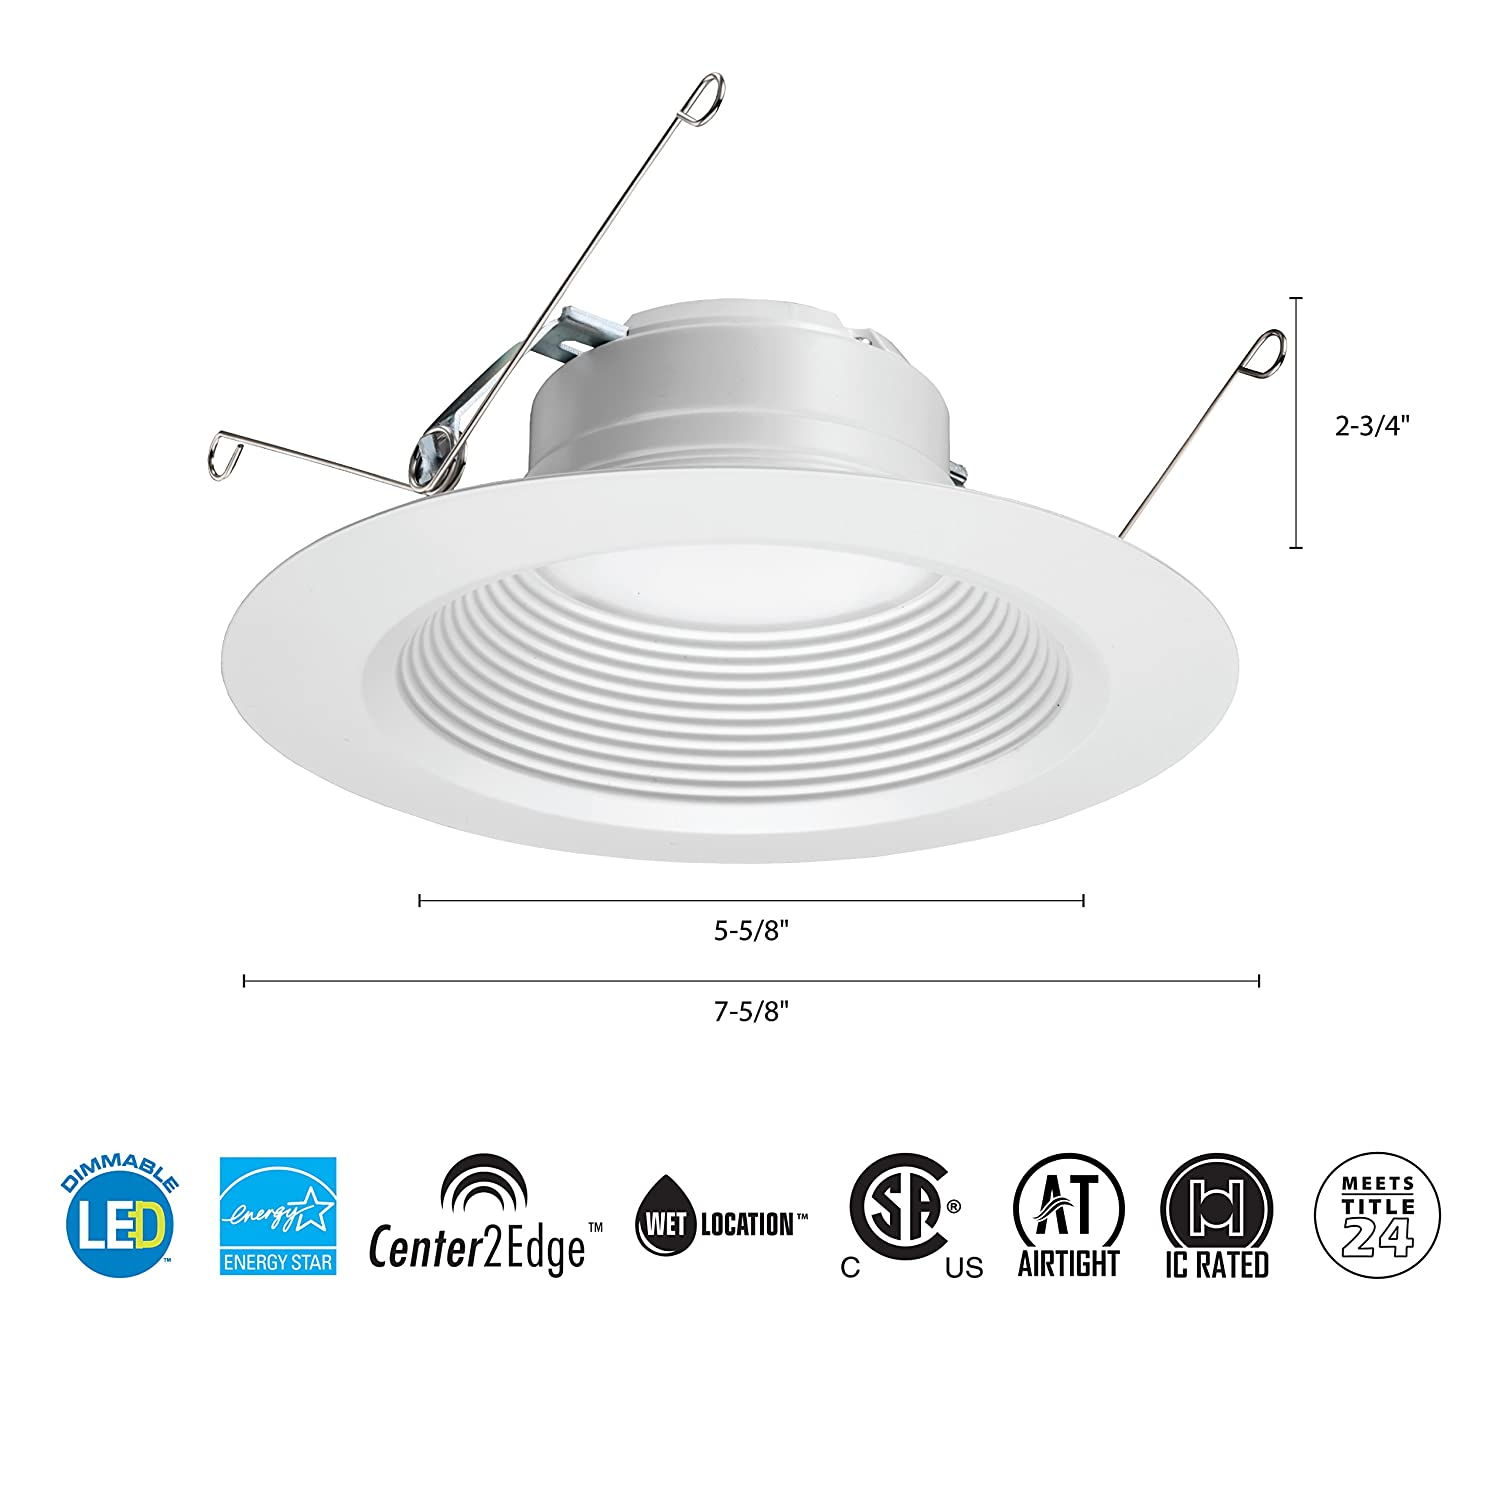 Lithonia Lighting 5/6 Inch White Retrofit LED Recessed Downlight, 12W Dimmable with 3000K Bright White, 835 Lumens - - Amazon.com